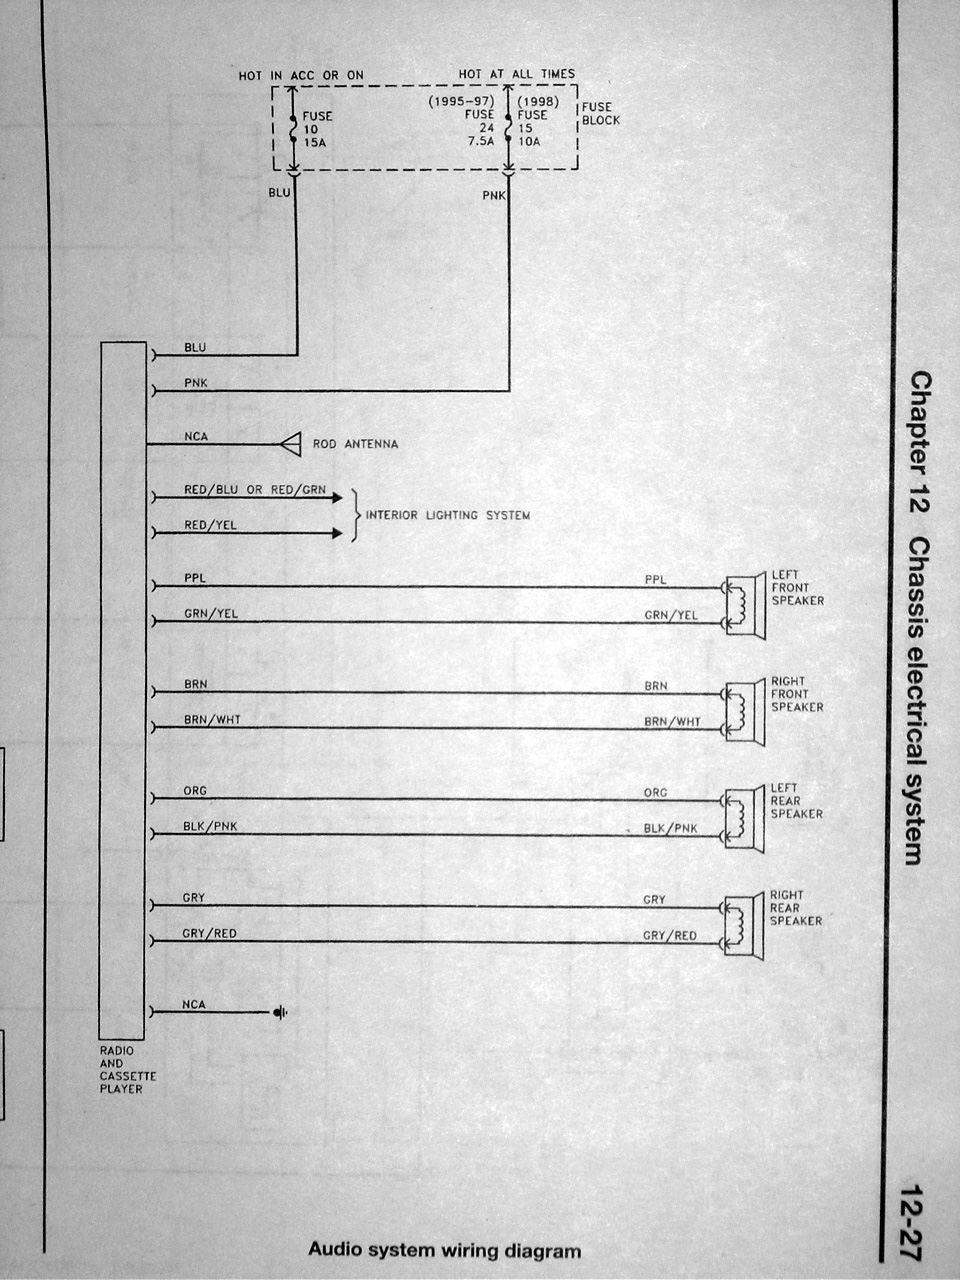 medium resolution of 2009 nissan sentra wiring diagram trusted schematics diagram rh propeller sf com 1995 nissan sentra fuse